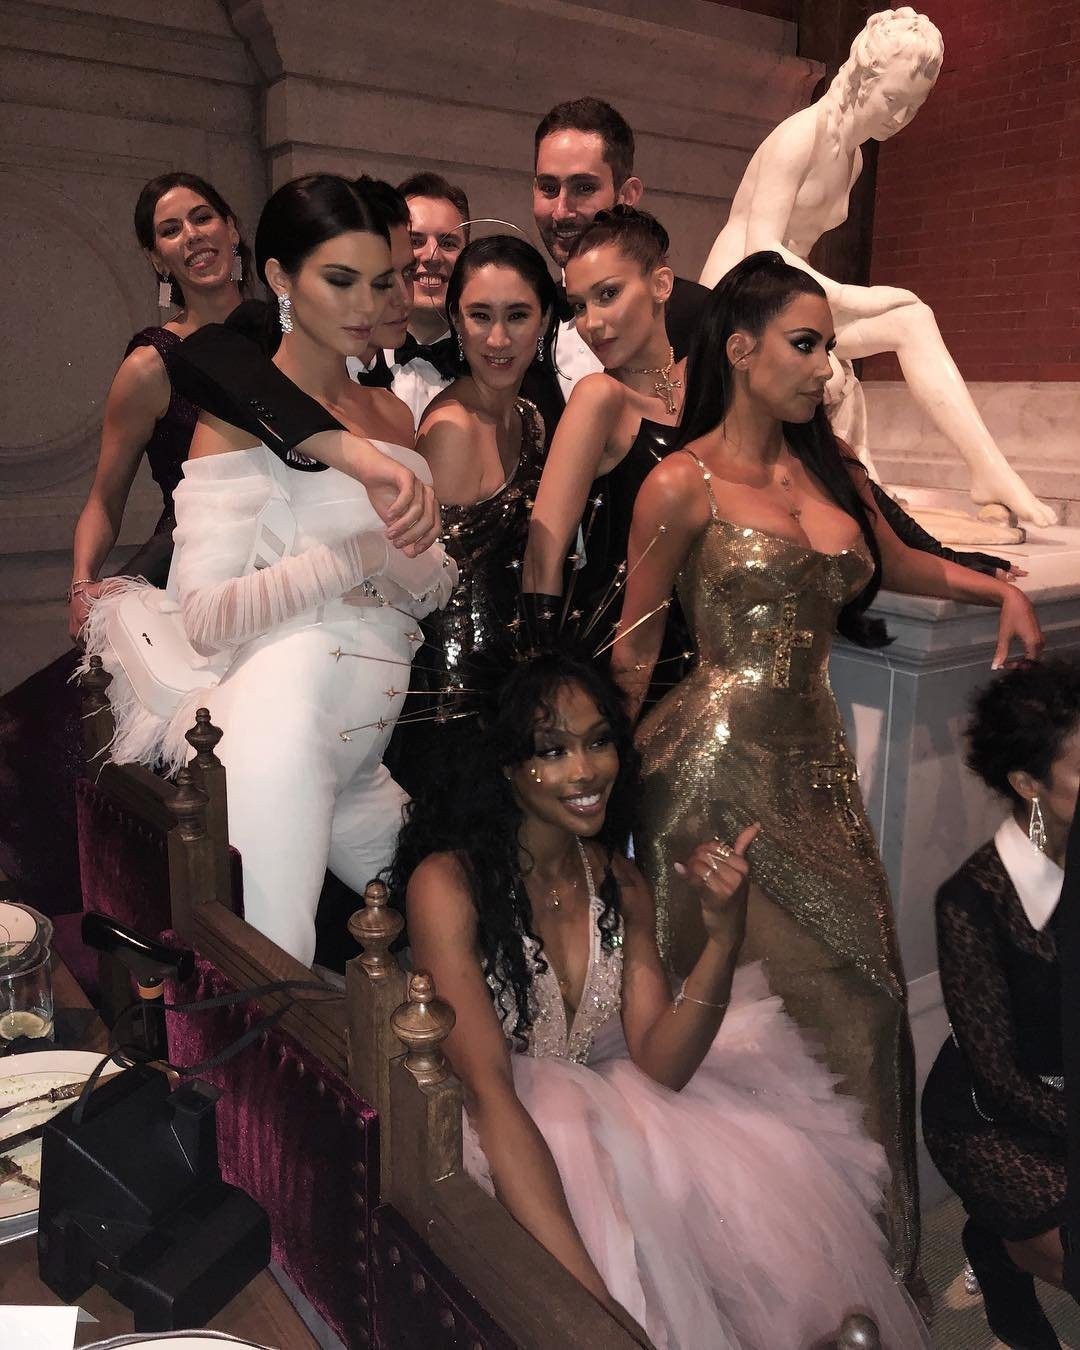 Time to Party -  Kendall Jenner, SZA, Bella Hadid, Kim Kardashian and fellow invitees get together for a photo opp.